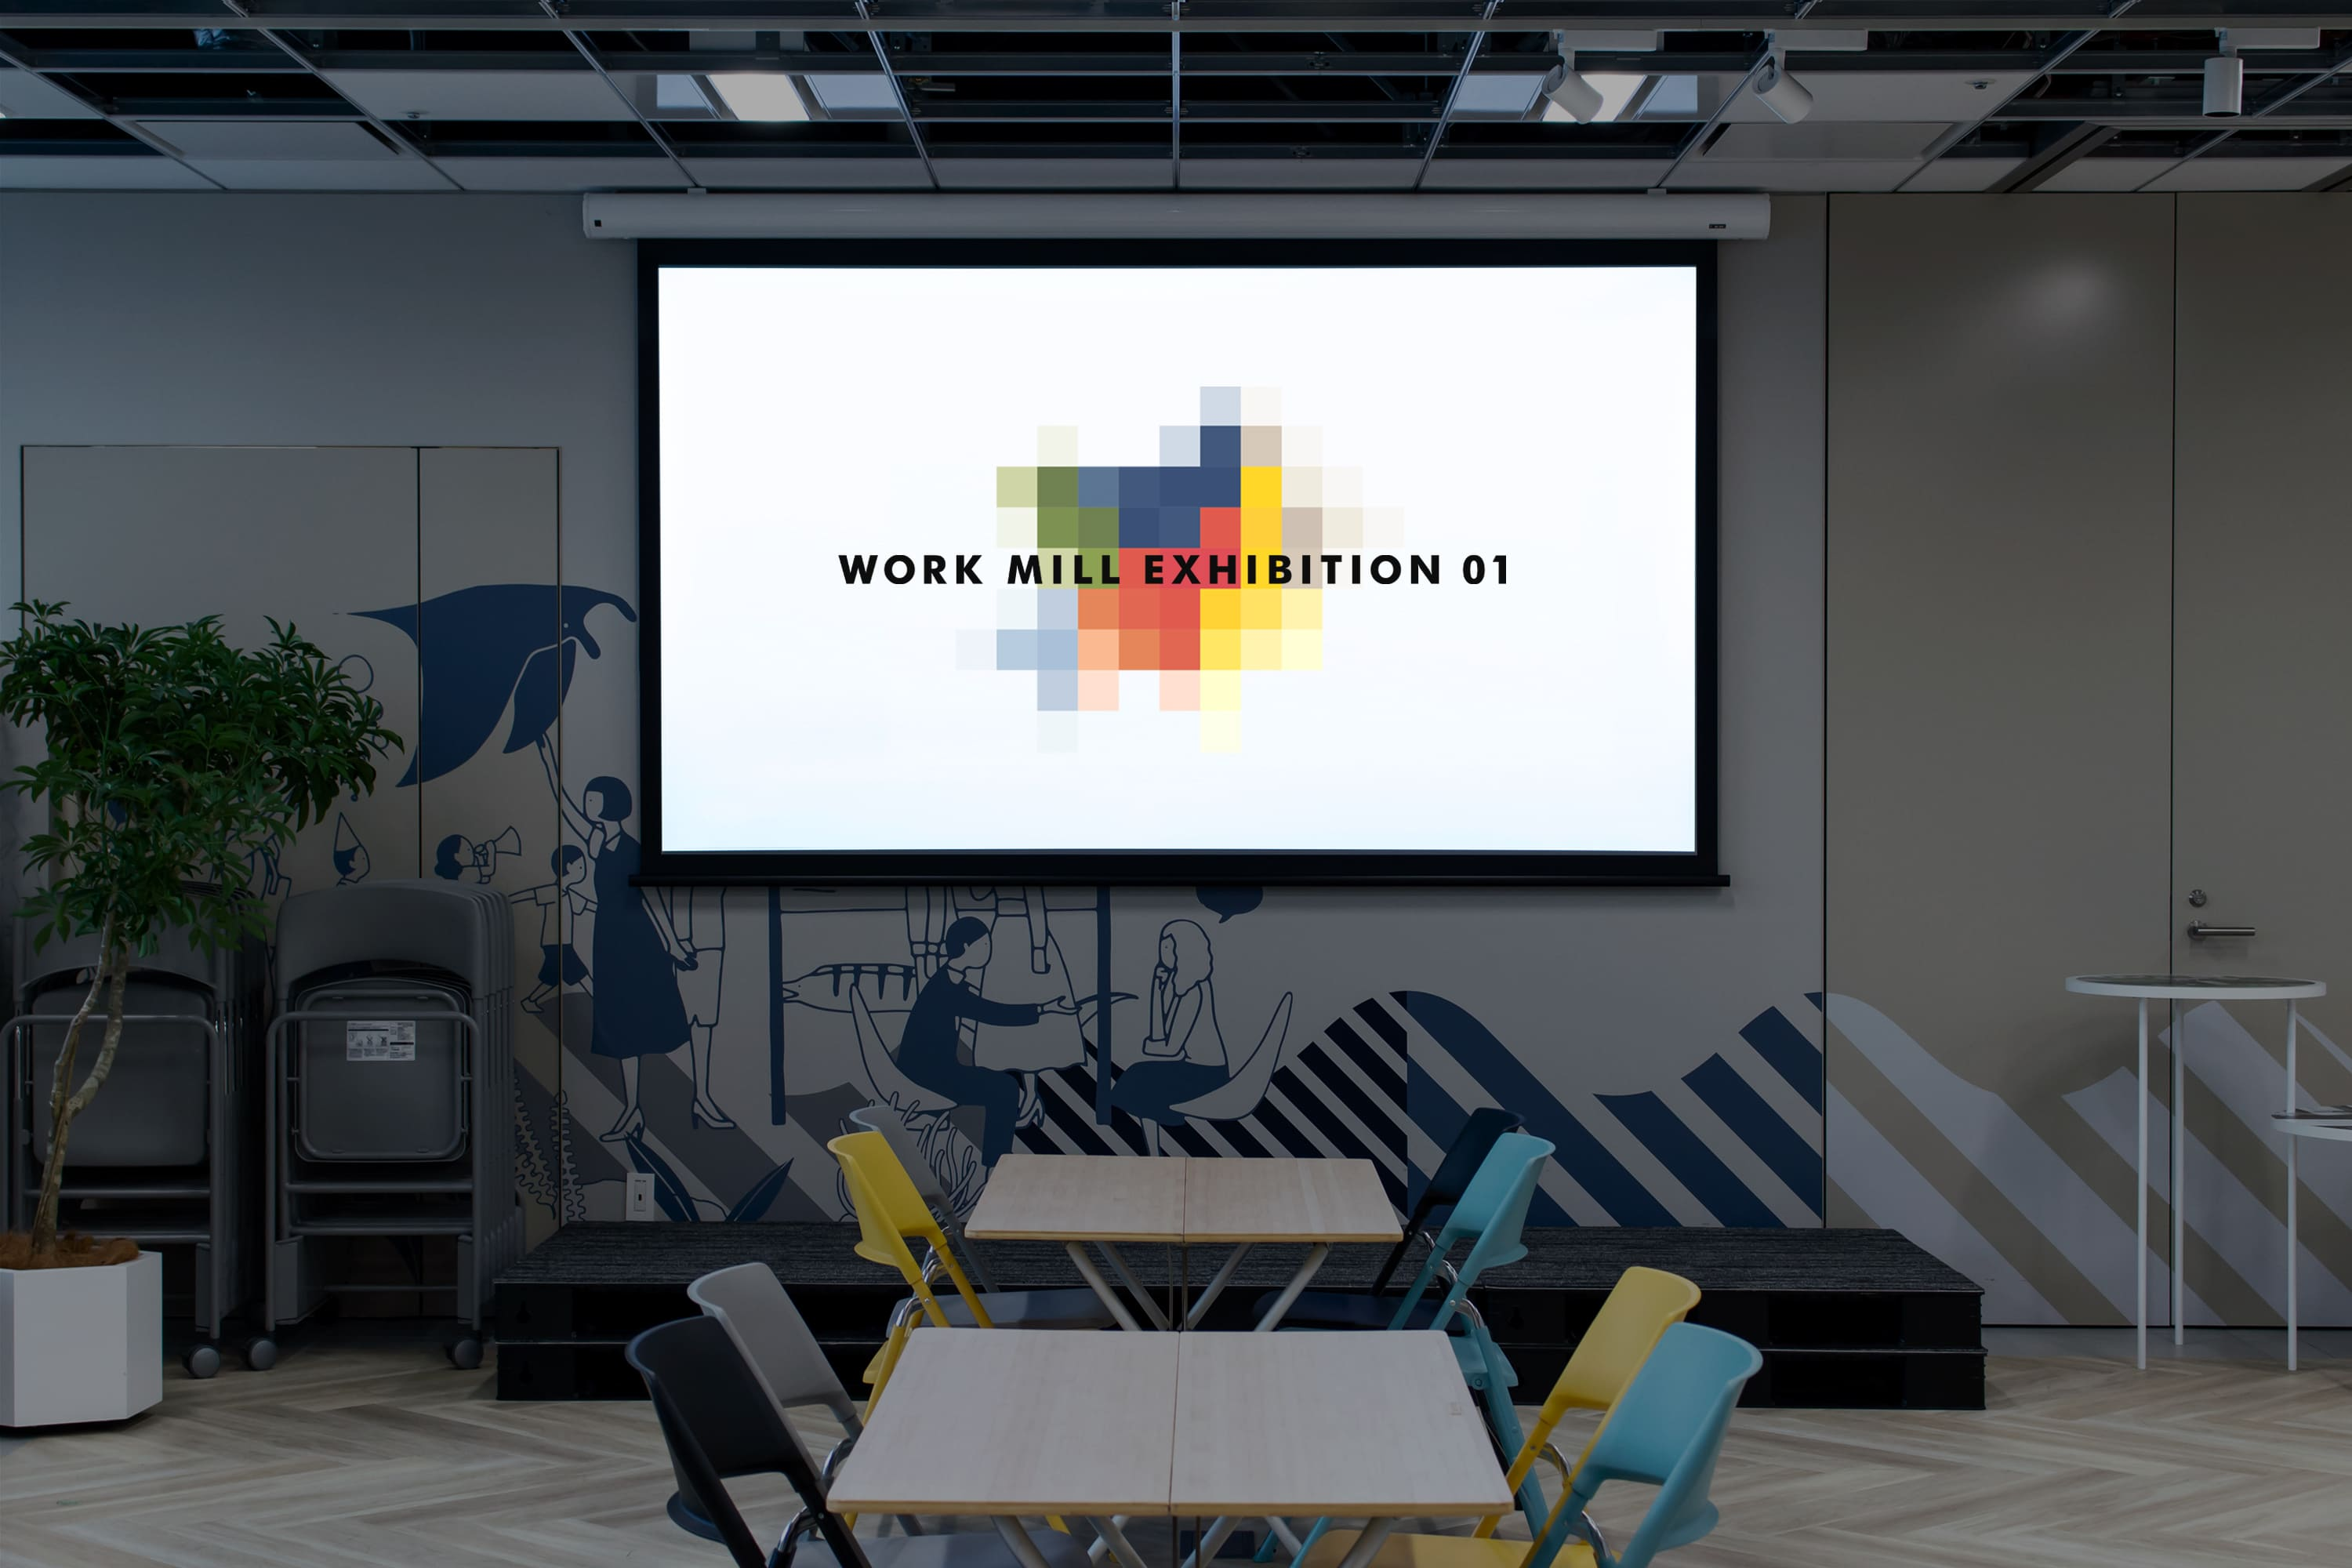 Work Mill Exhibition 01|Motion graphic on screen